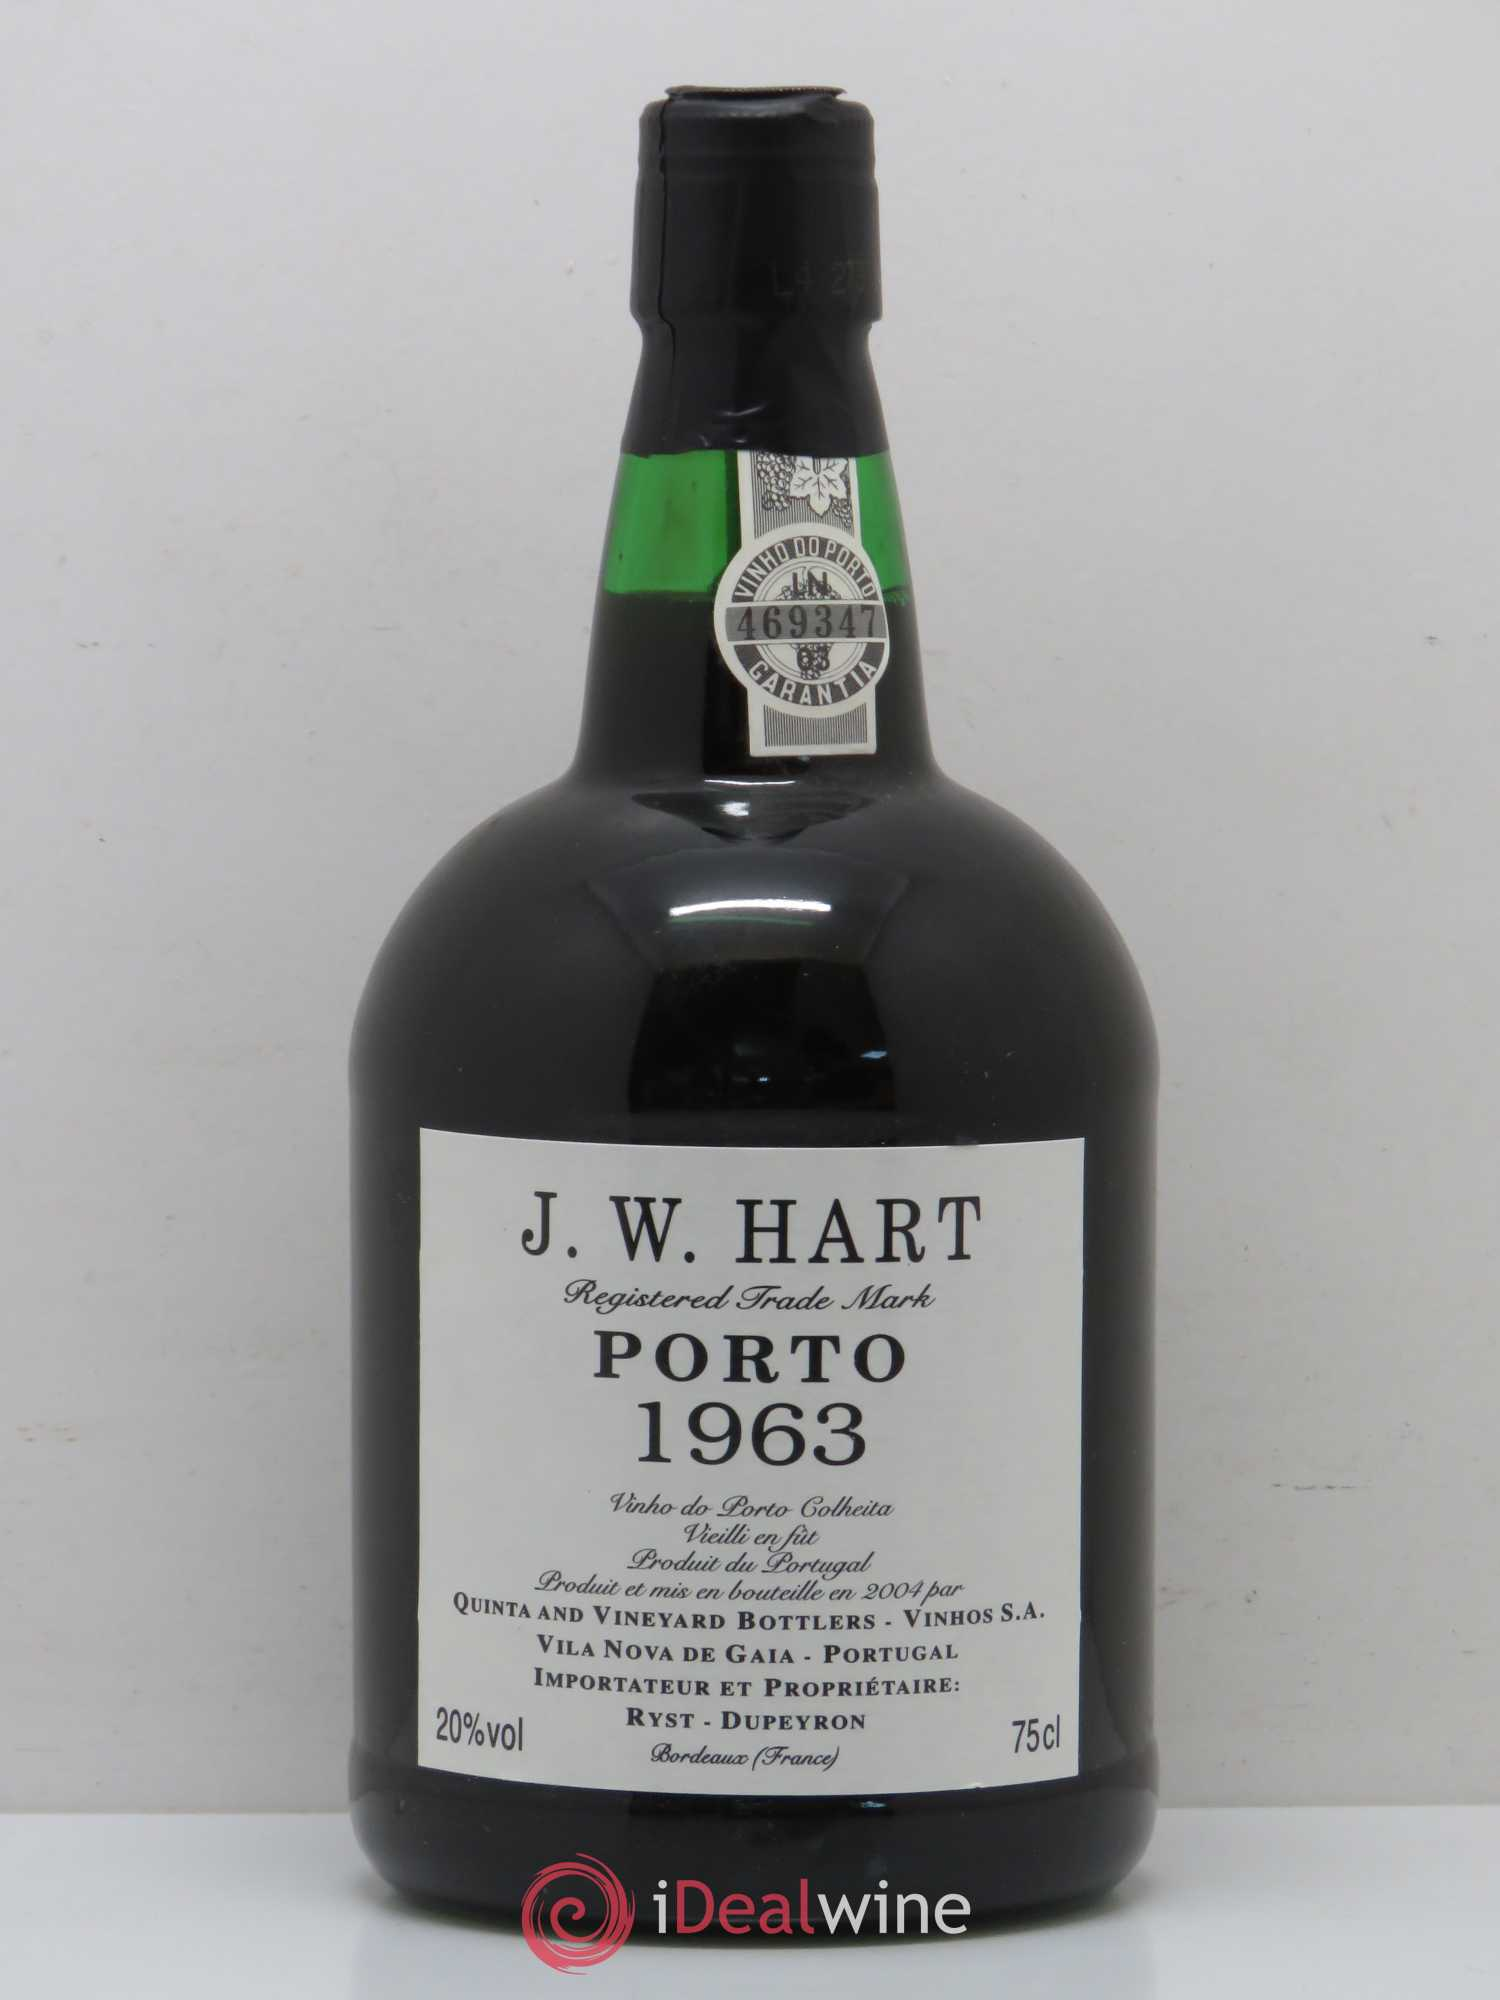 Porto JW Hart 1963 - Lot of 1 Bottle